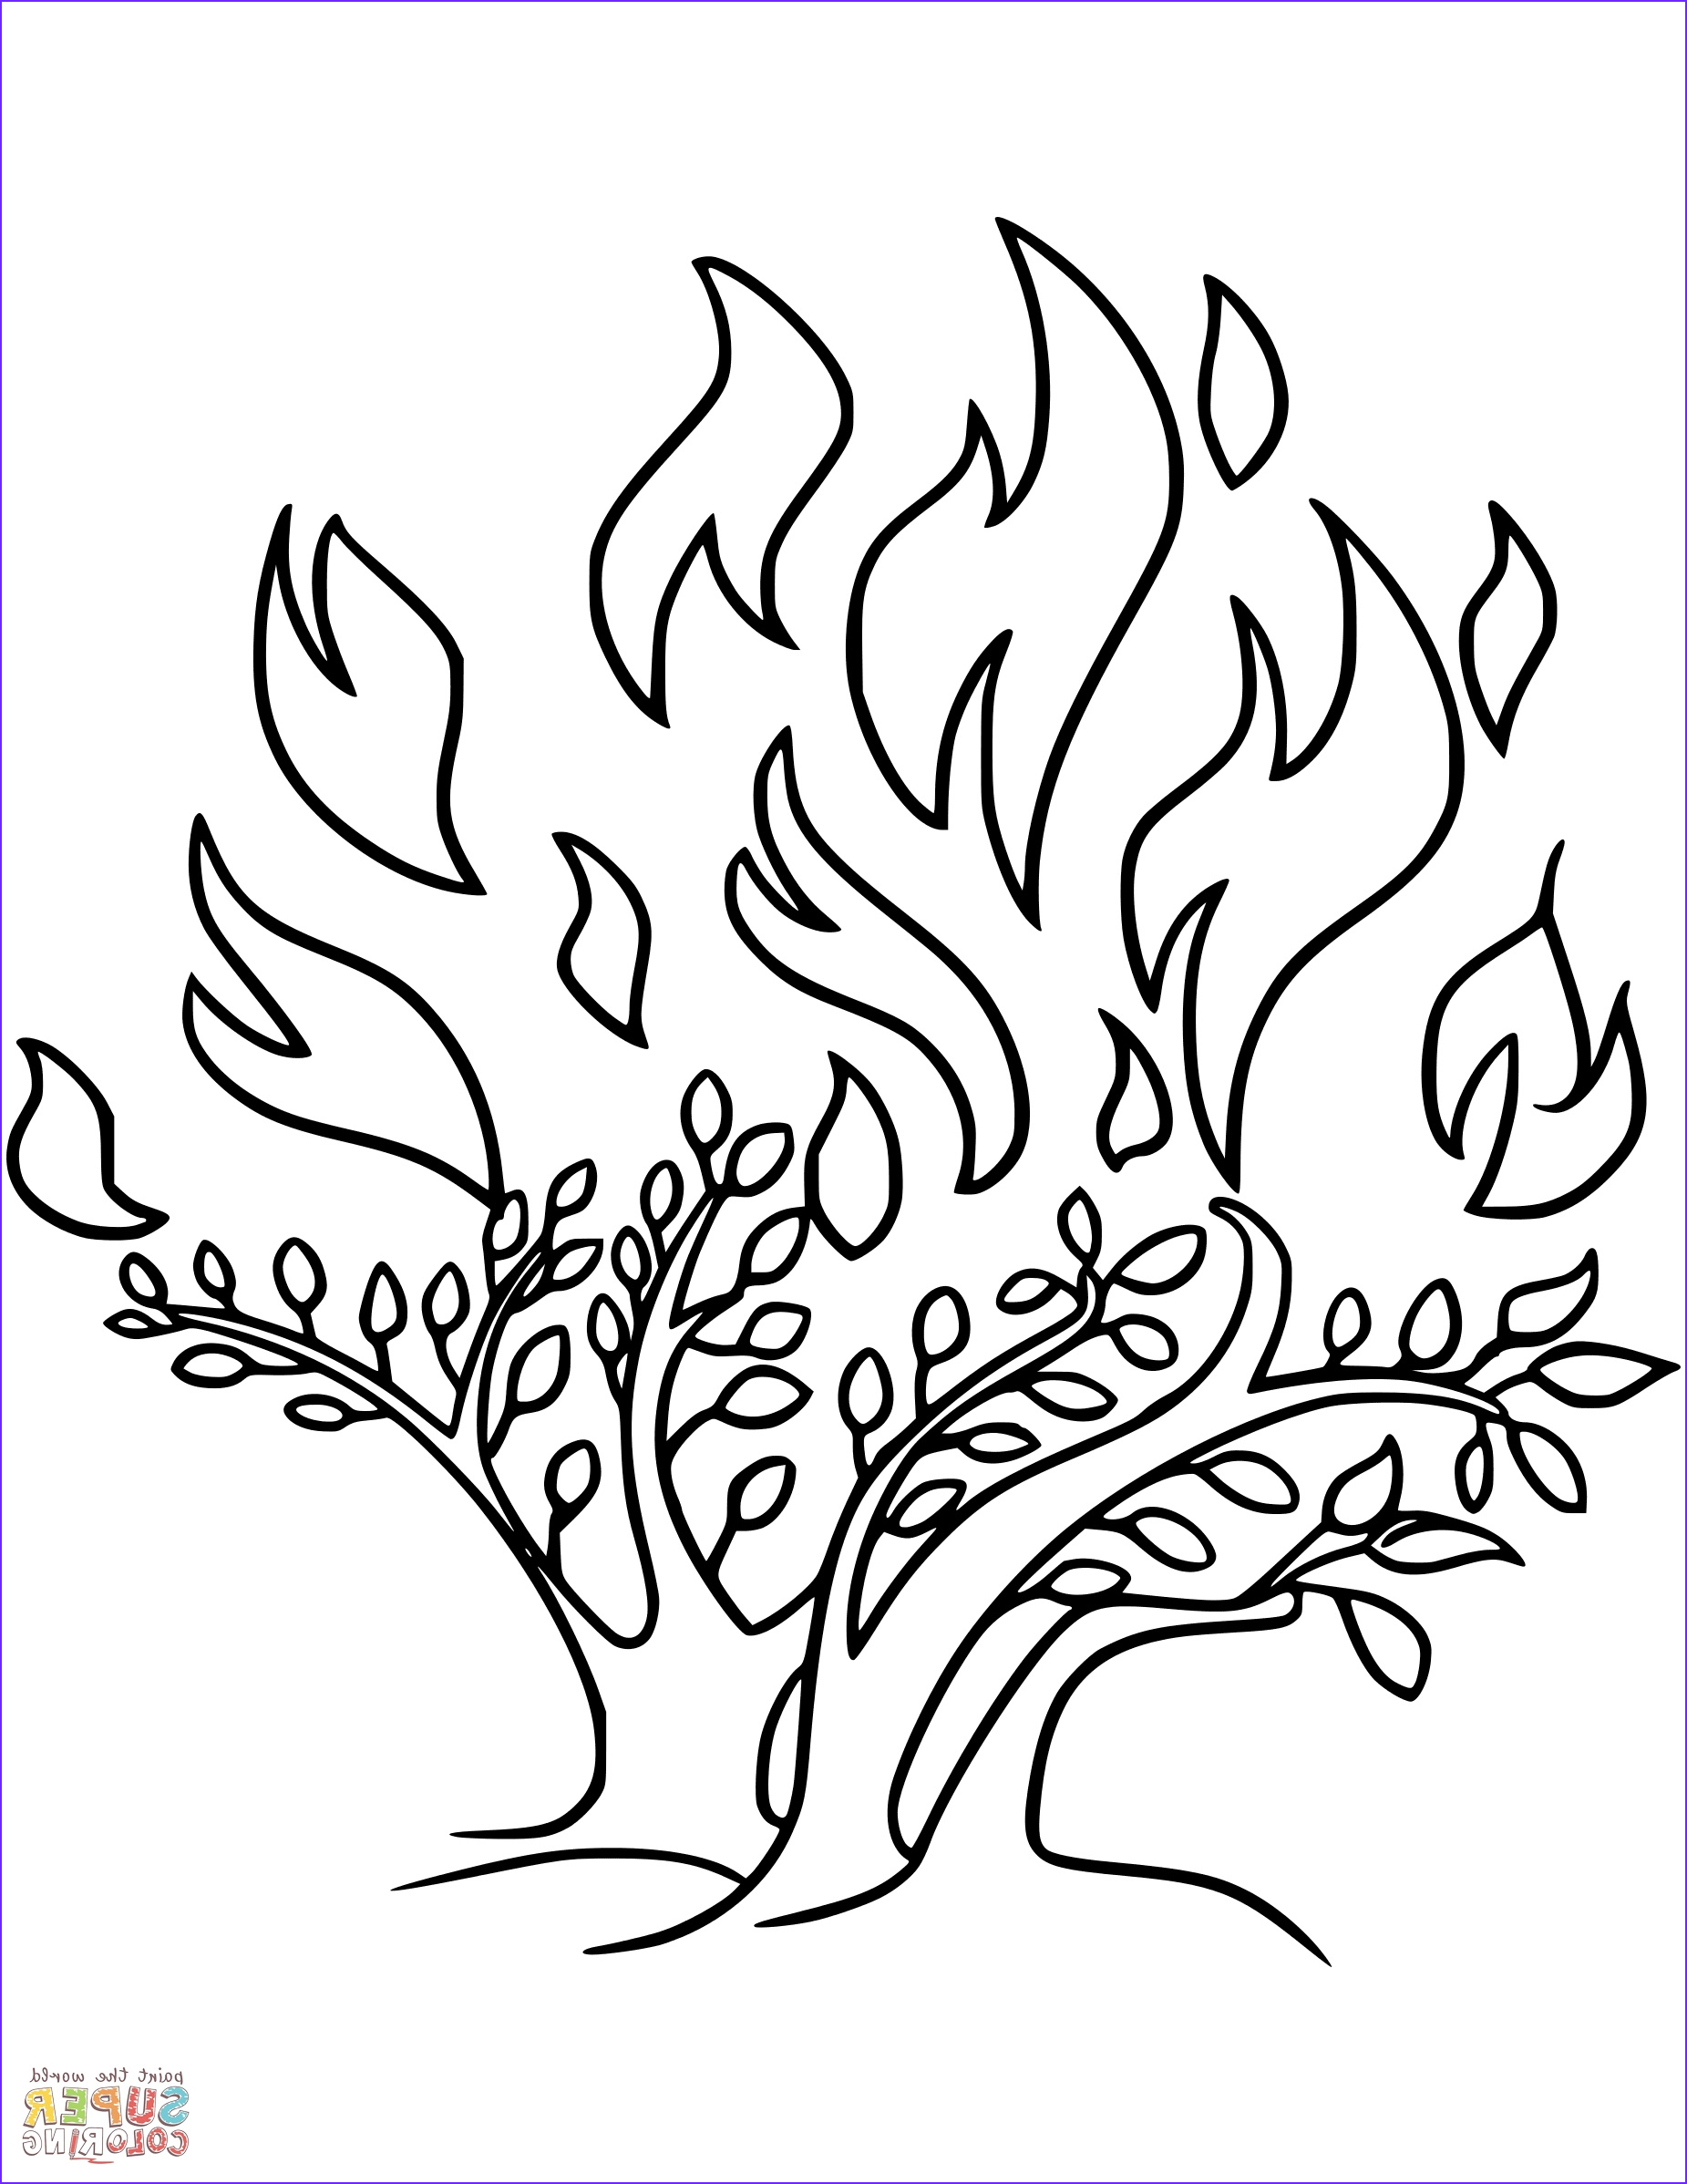 moses and the burning bush activities for kids